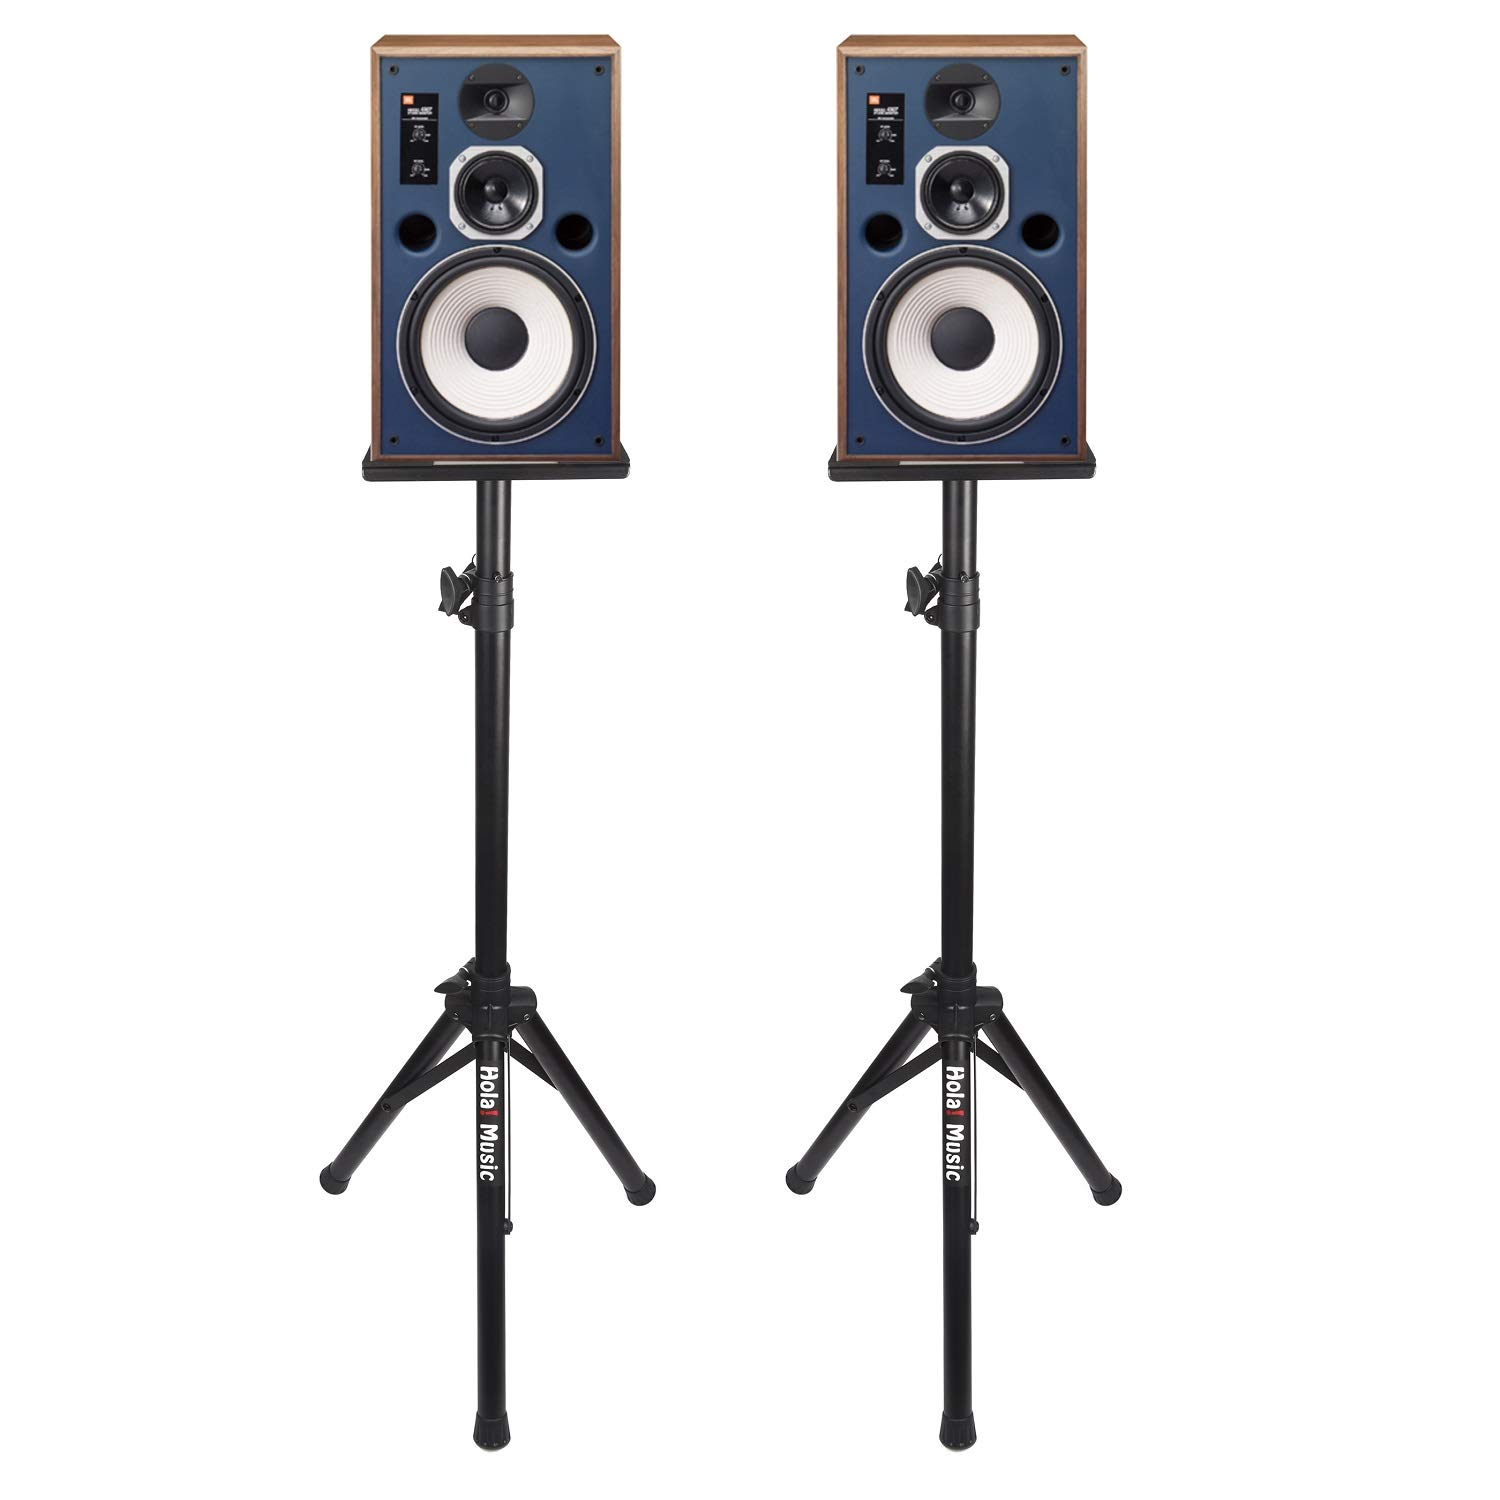 PAIR of Studio Monitor Speaker Stands by Hola! Music, Professional Heavy-Duty Tripod Structure, Adjustable Height, Model HPS-600MS by Hola! Music (Image #2)